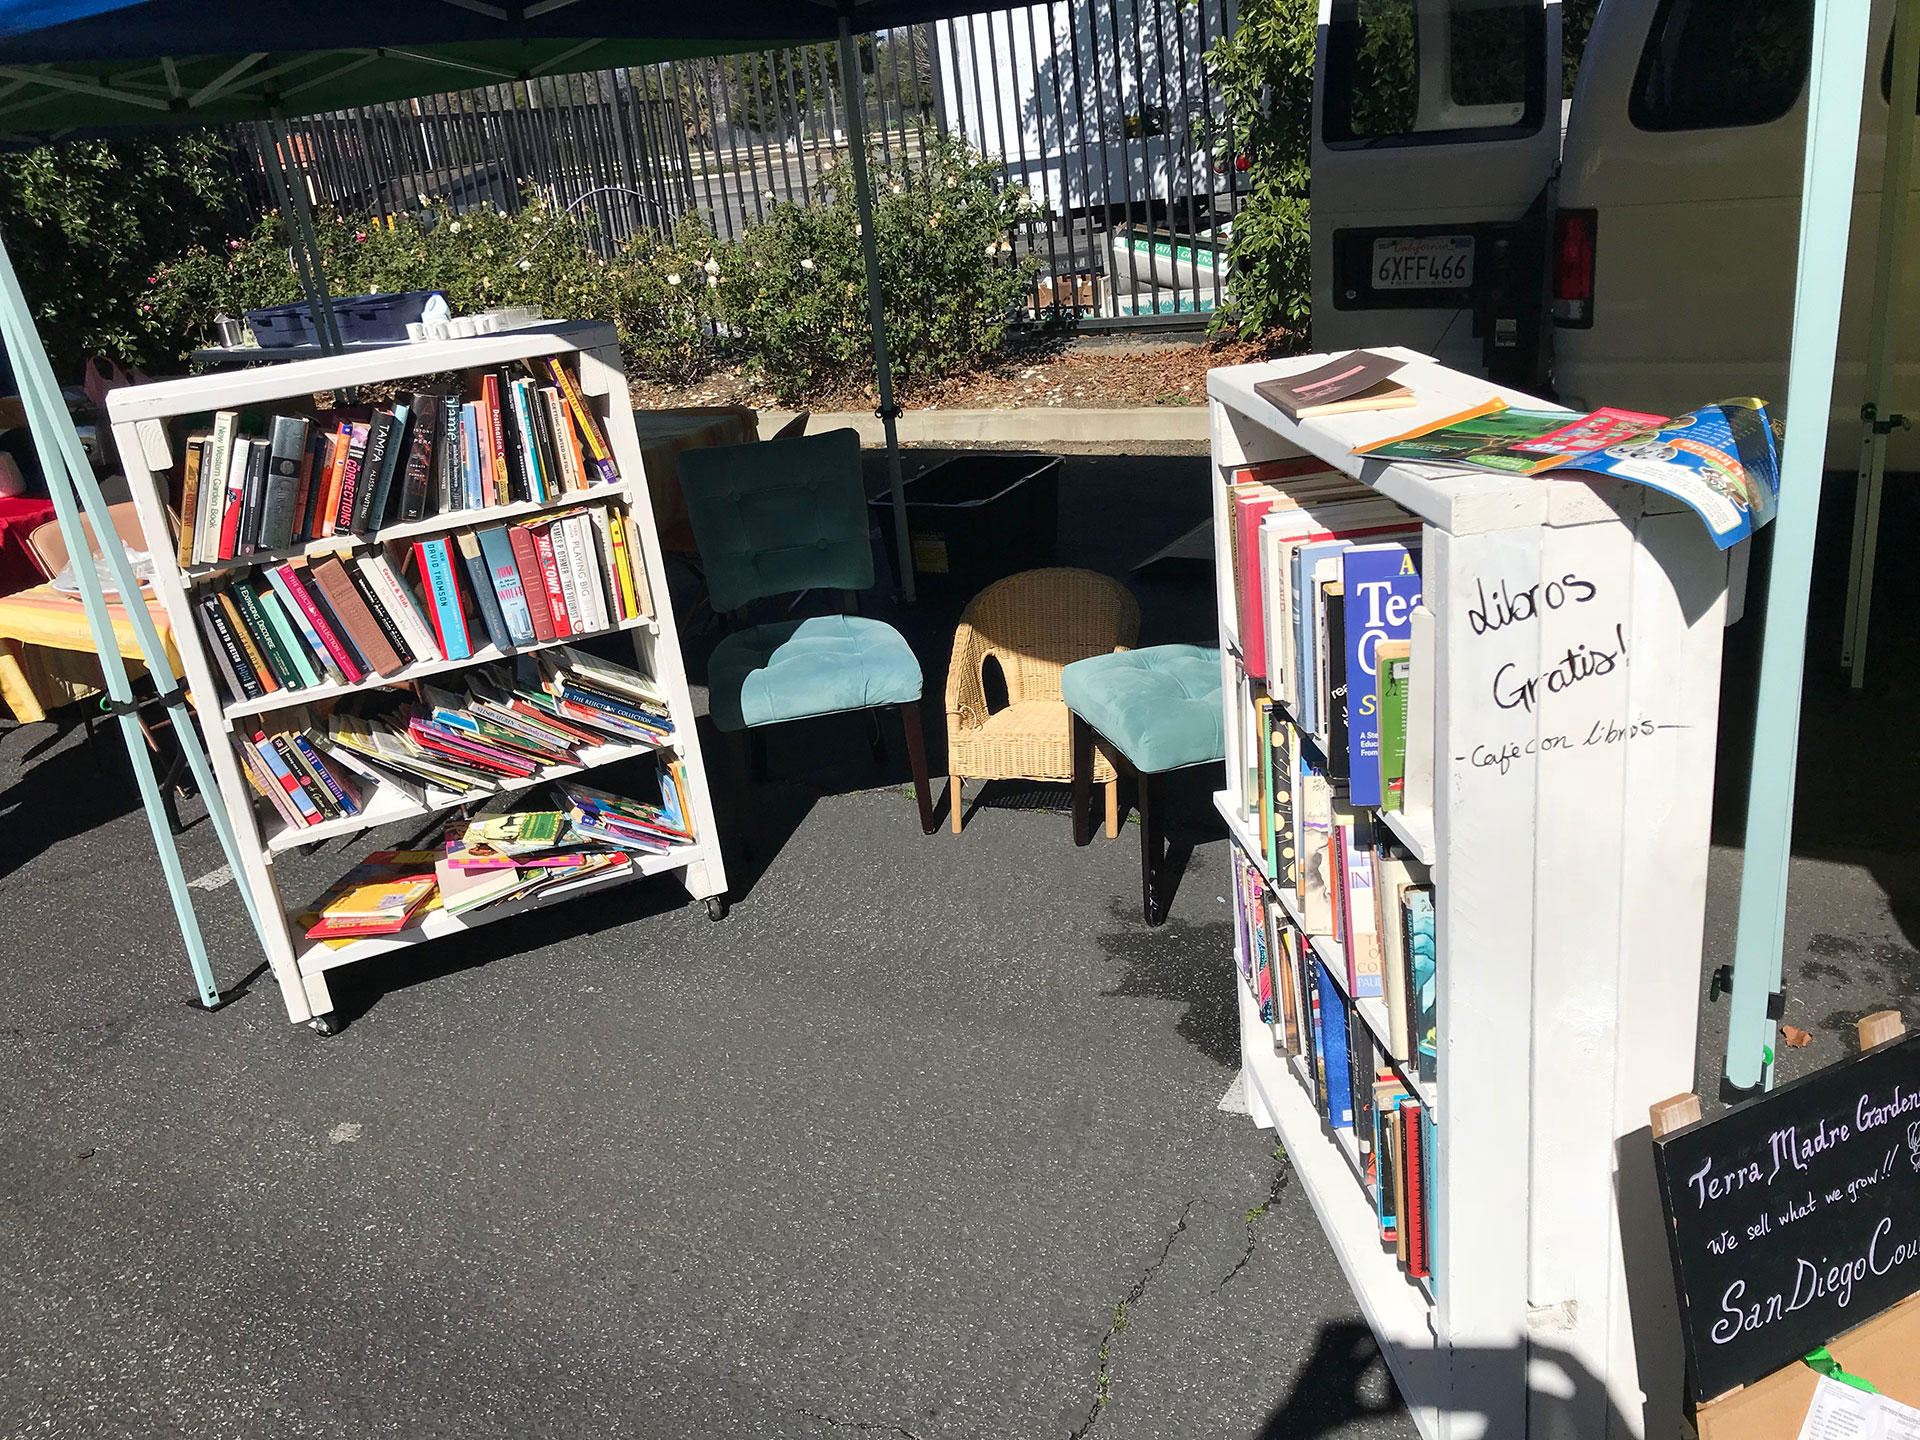 Free books to read